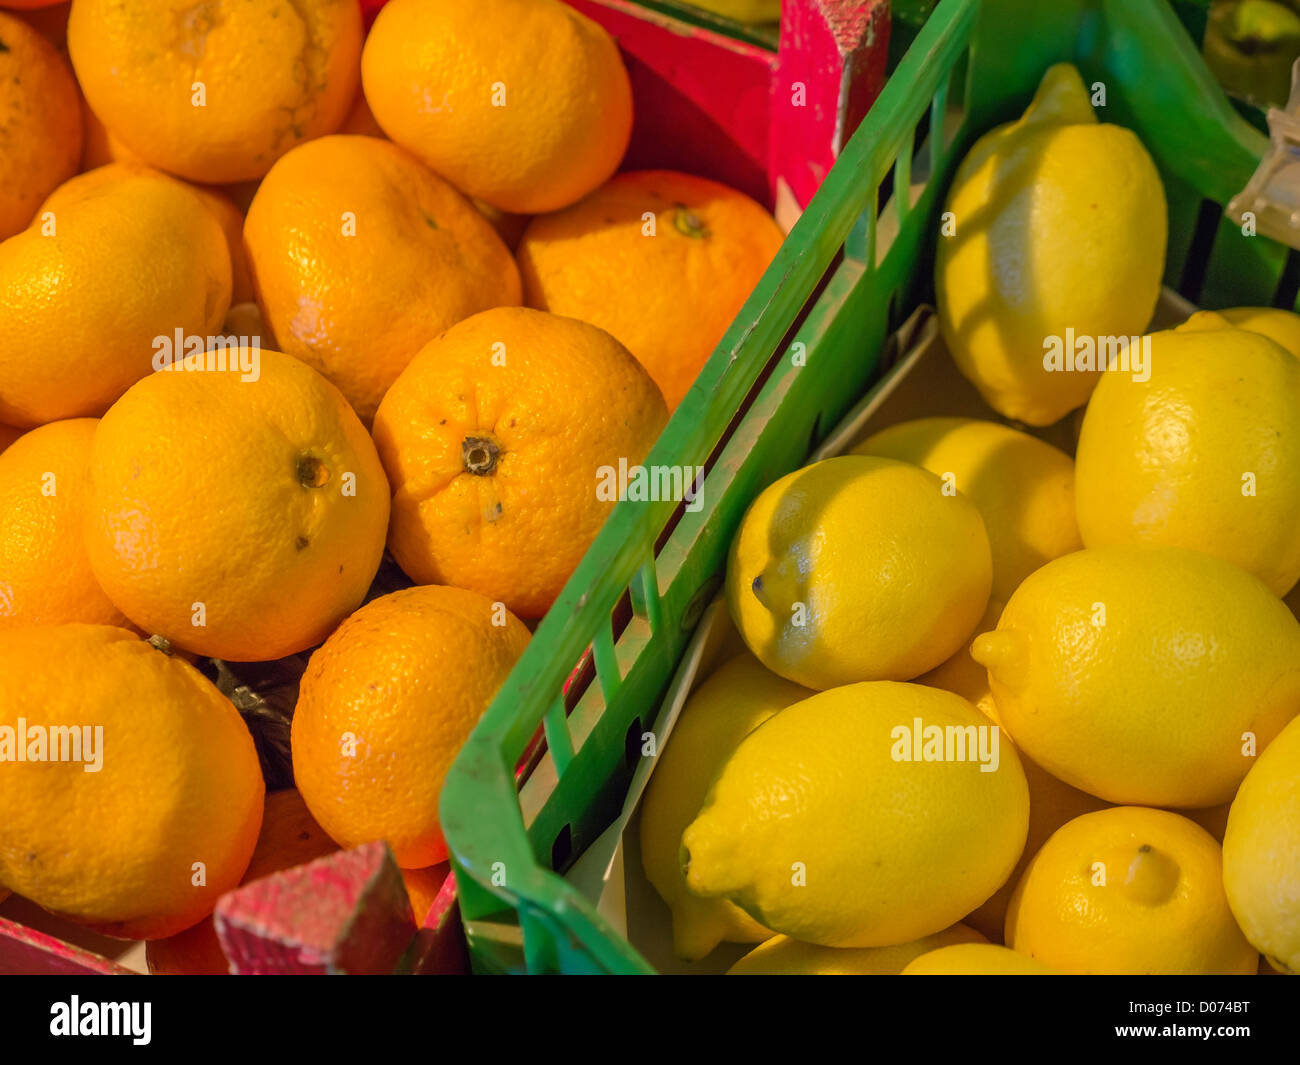 Baskets of oranges and lemons for sale in a farmers' market in Scotland. - Stock Image